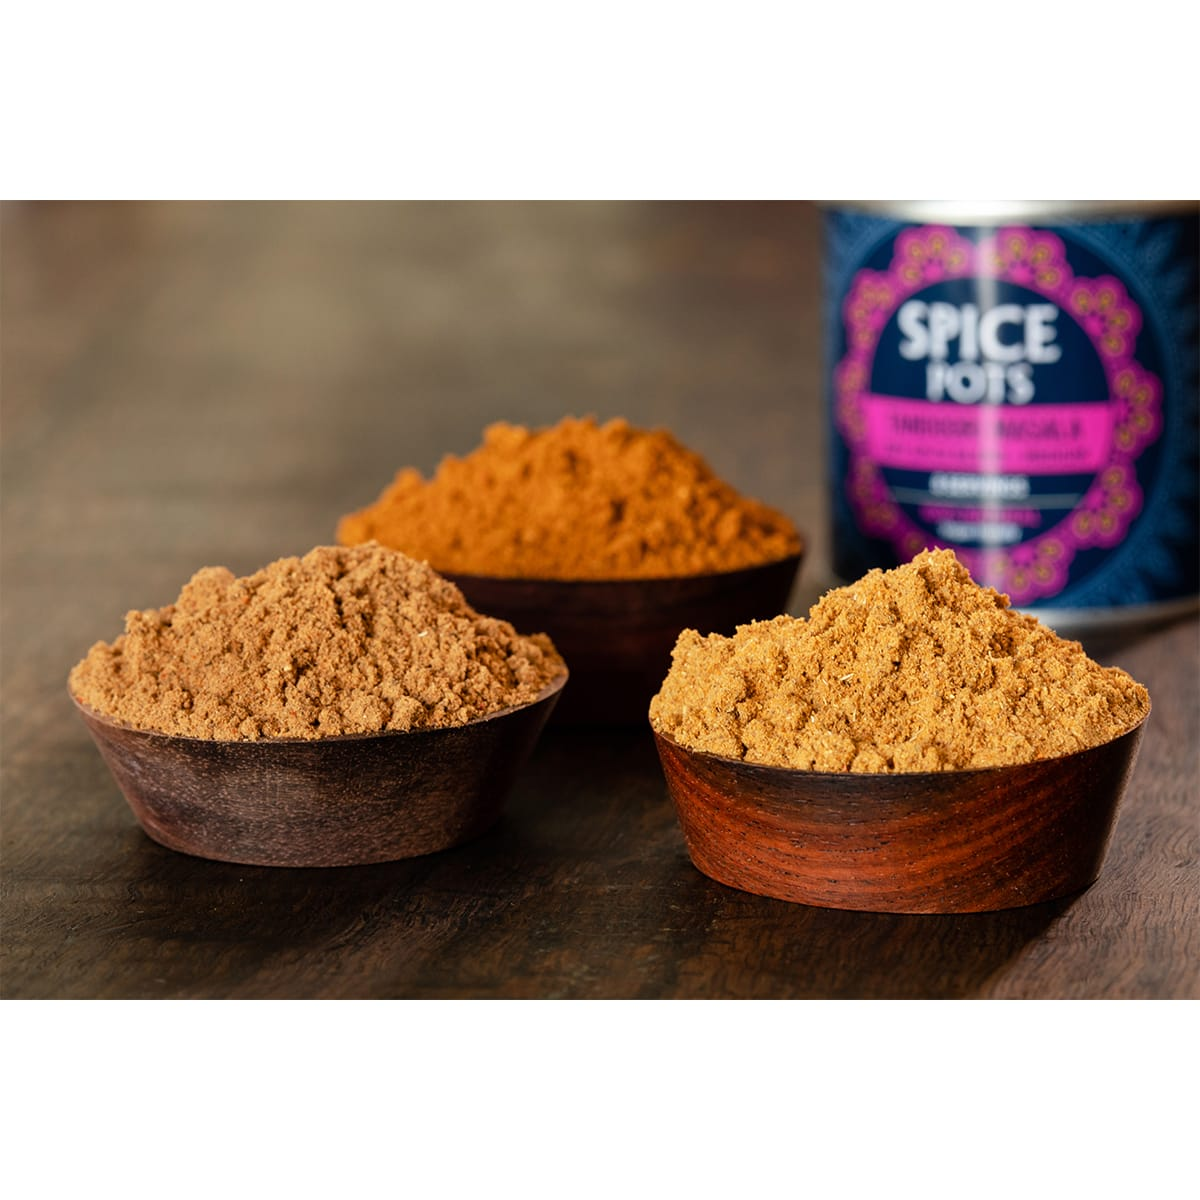 Spice Pots - spices